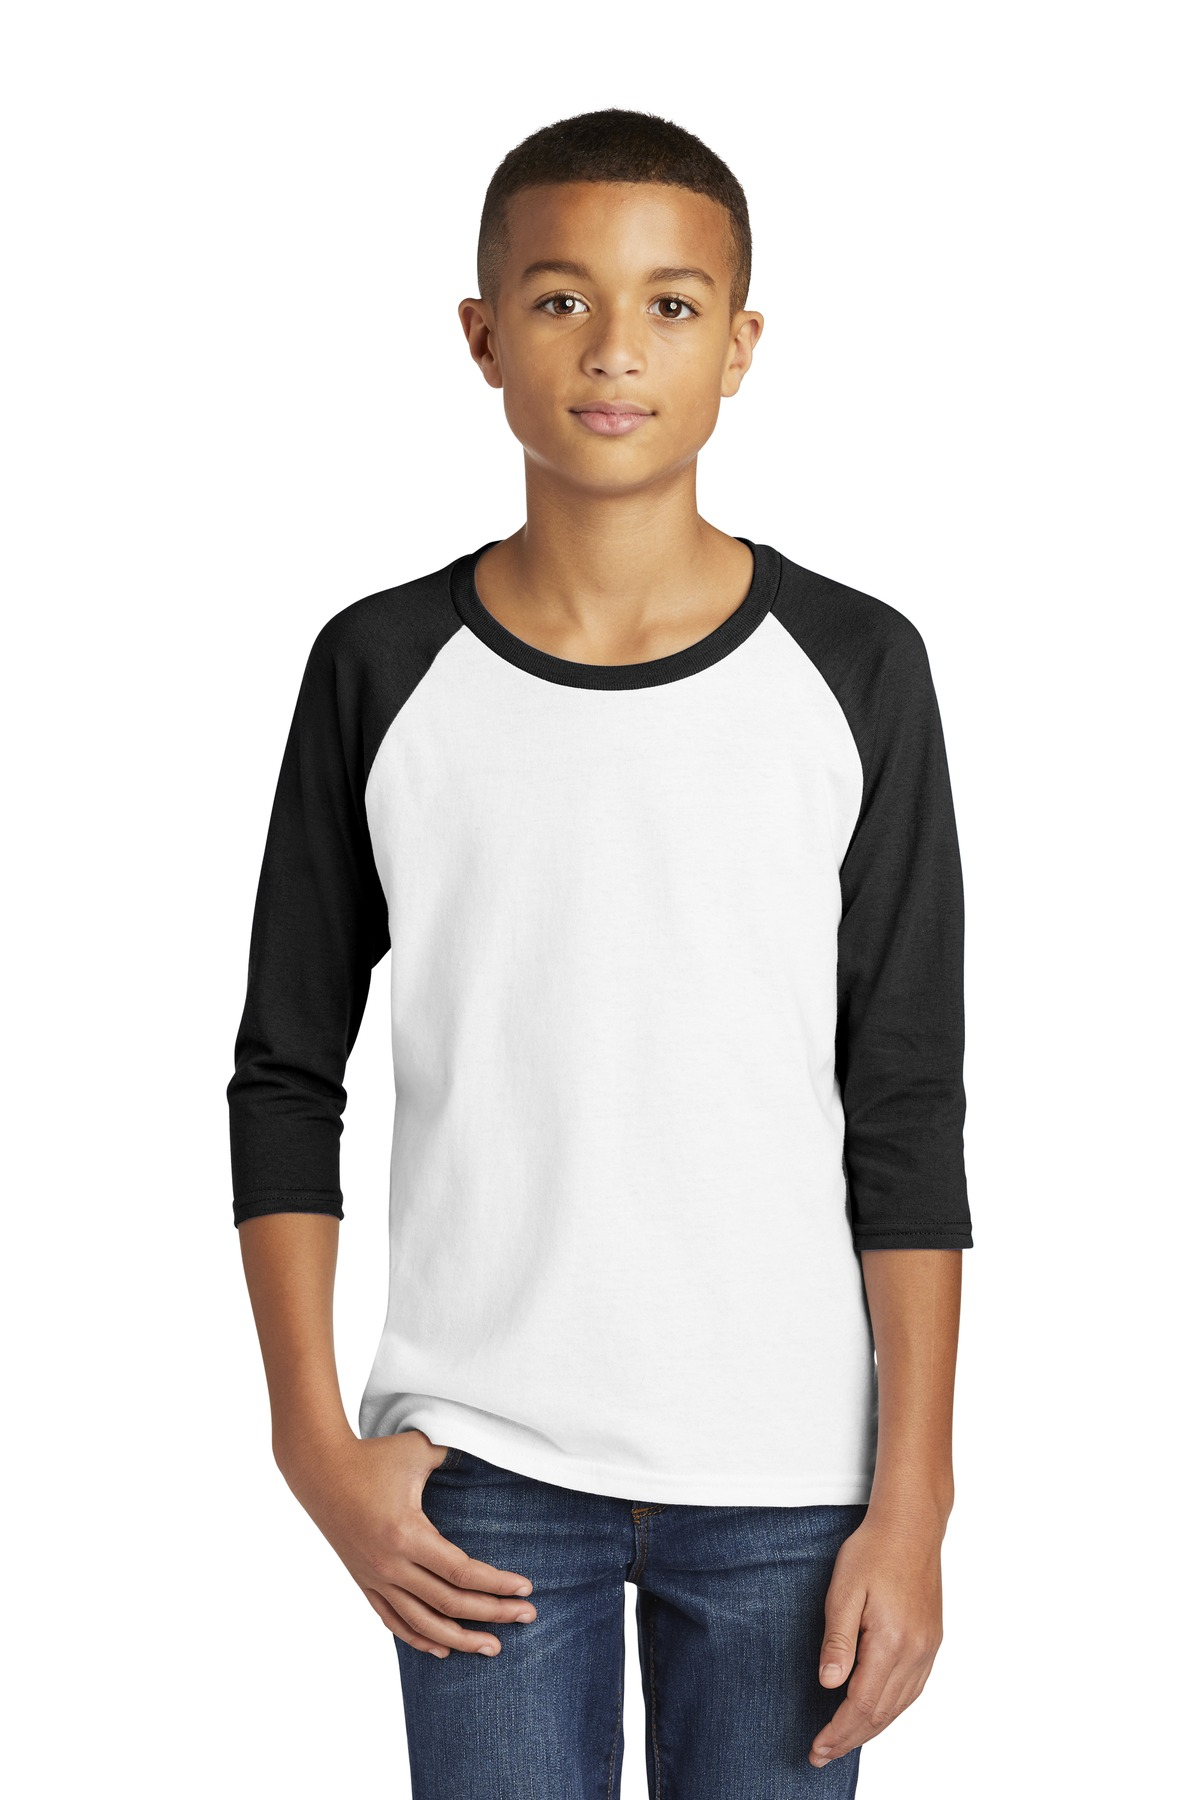 c7980244705 Buy Gildan ® Heavy Cotton Youth 3 4-Sleeve Raglan T-Shirt. - Gildan ...